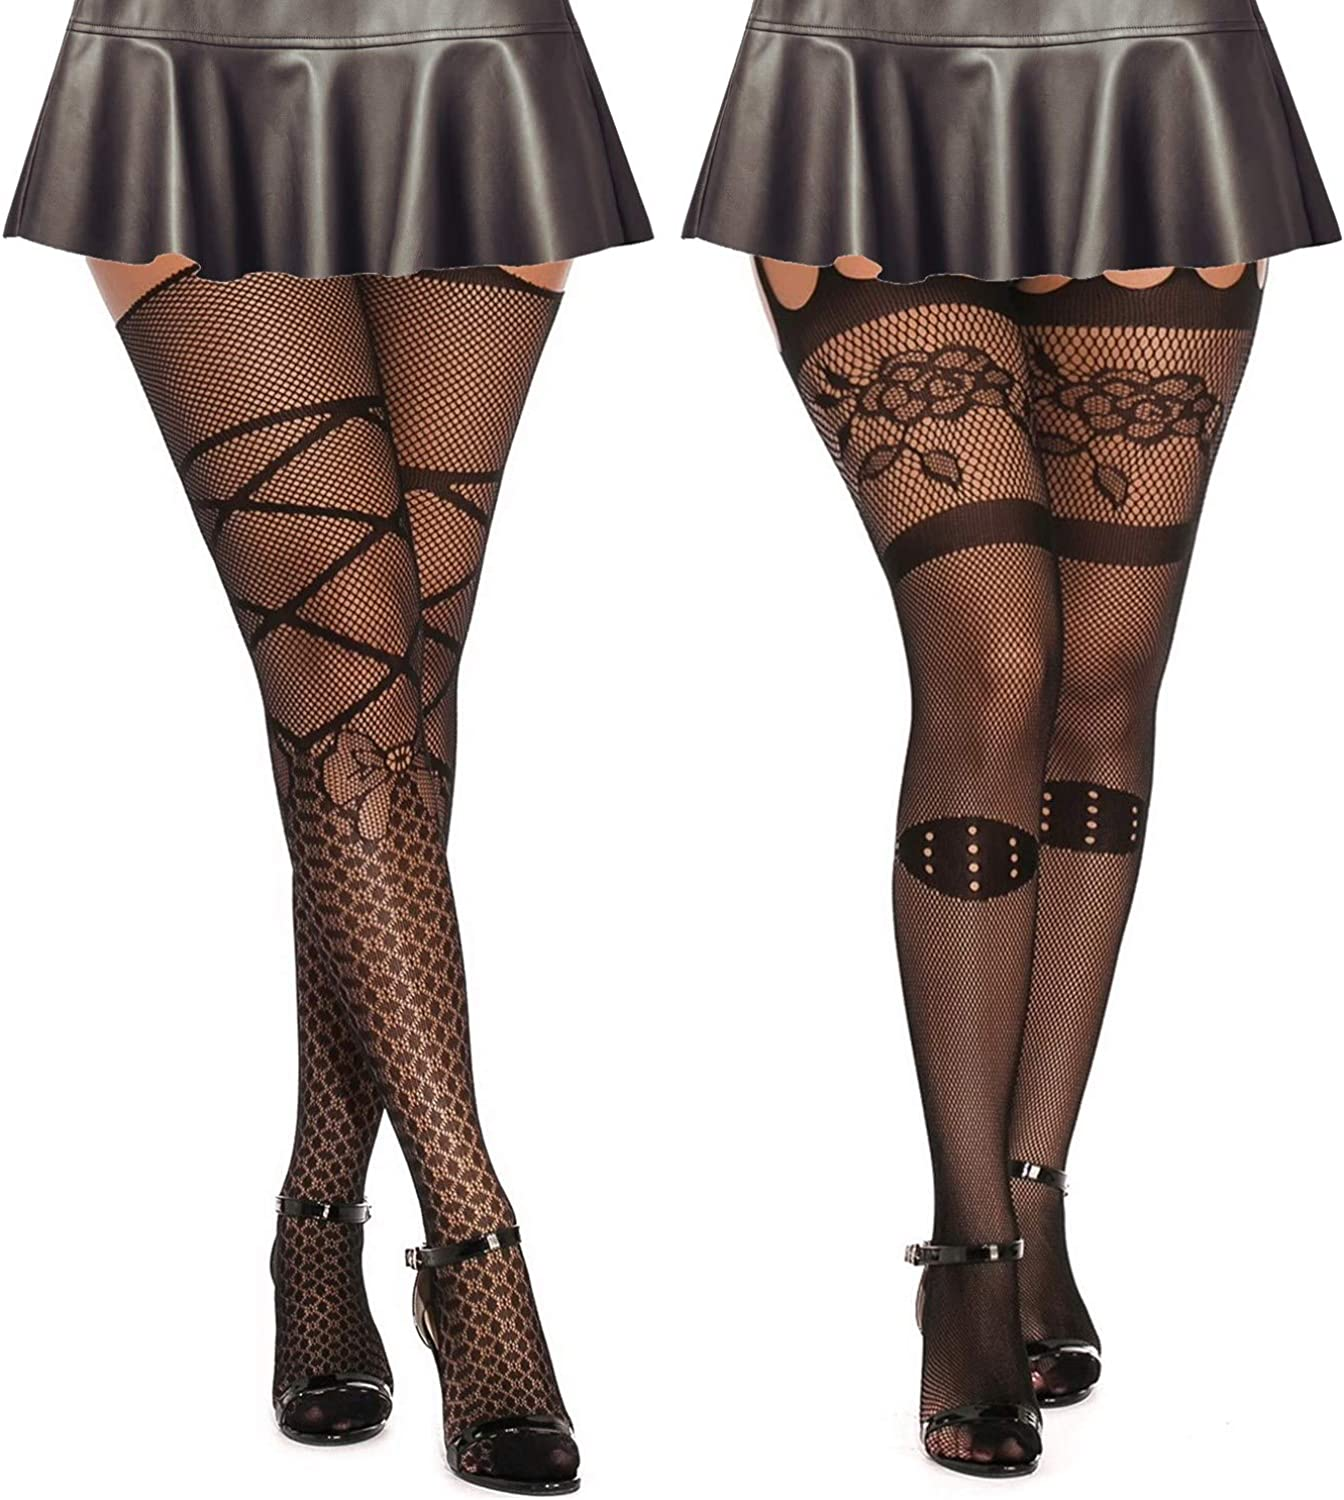 MengPa Fishnet Stockings Thigh High Patterned Suspender Tights Pantyhose for Women